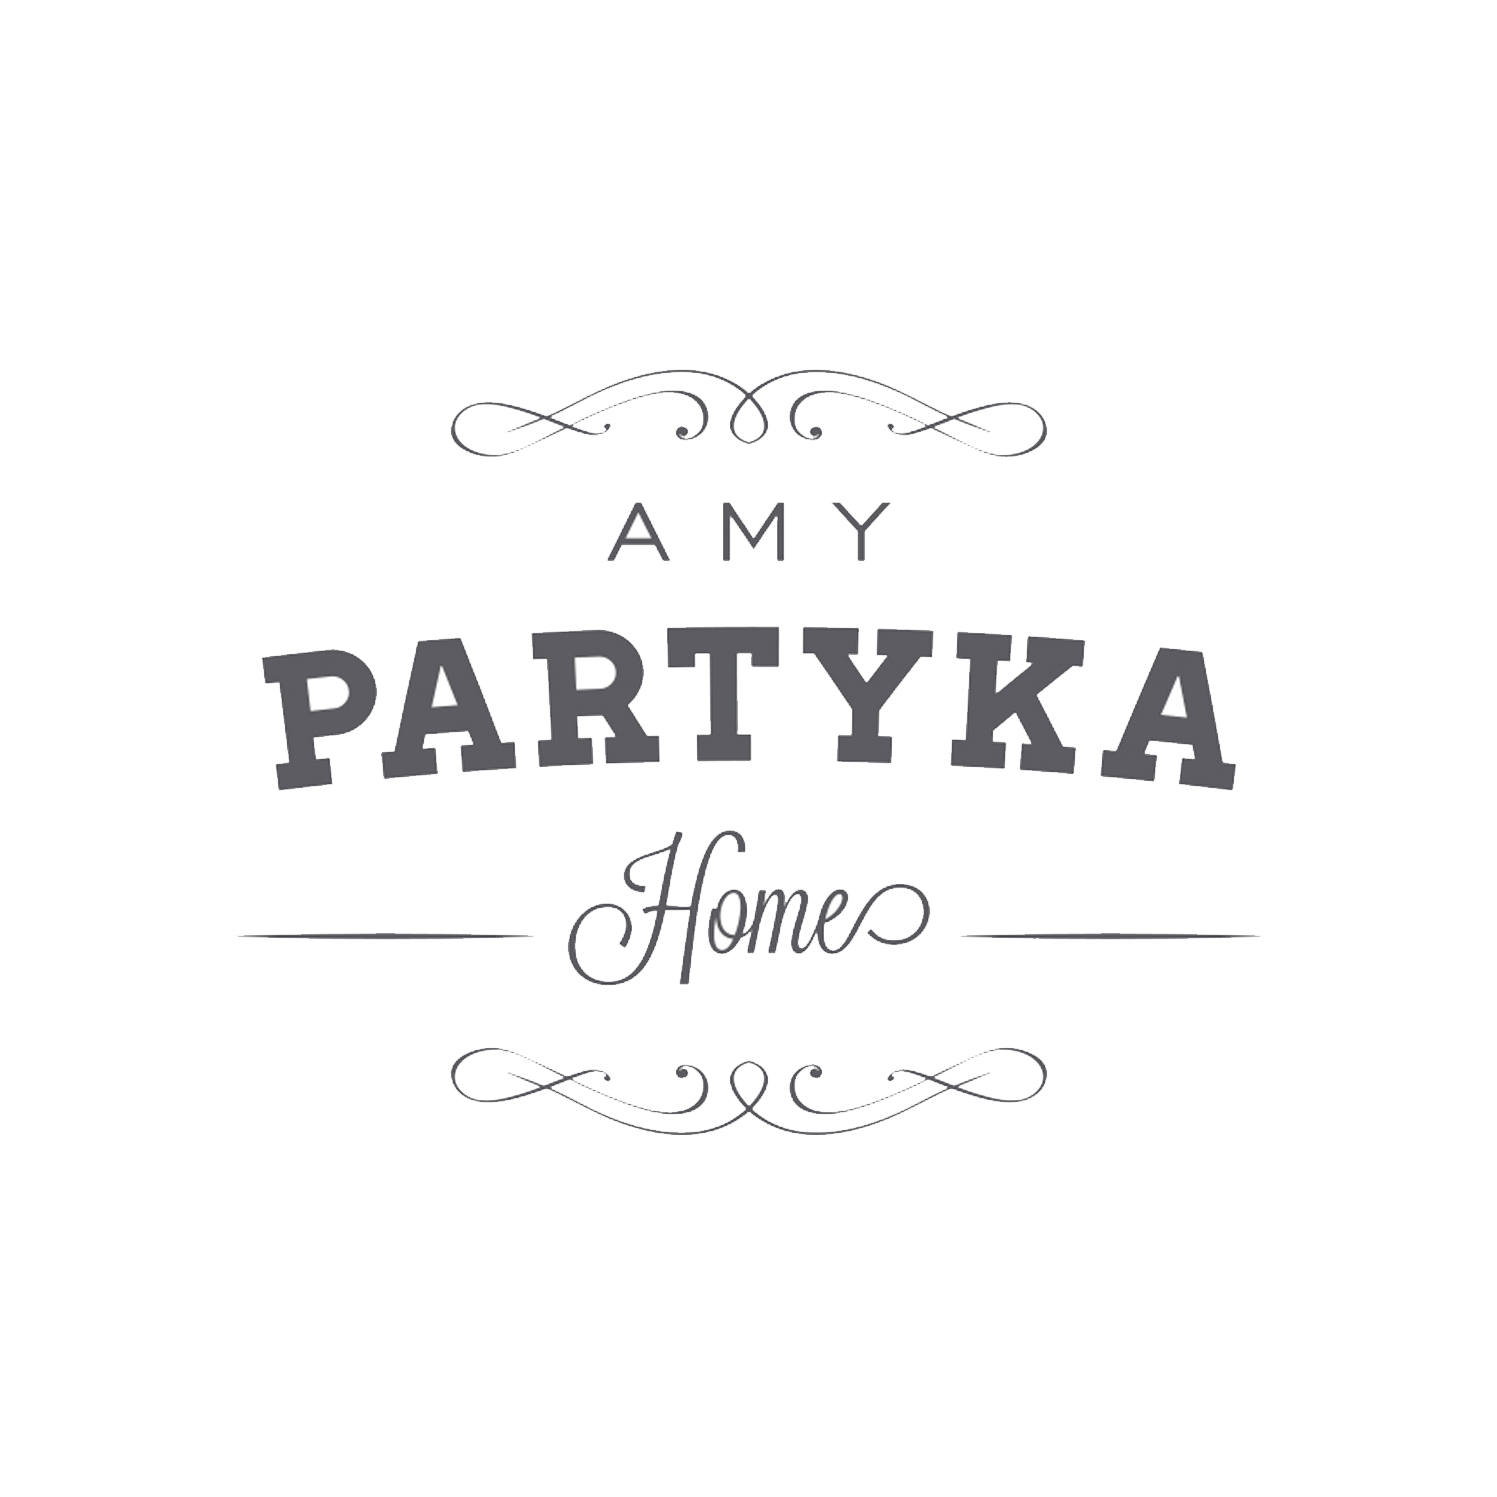 Amy Partyka Home Logo Design